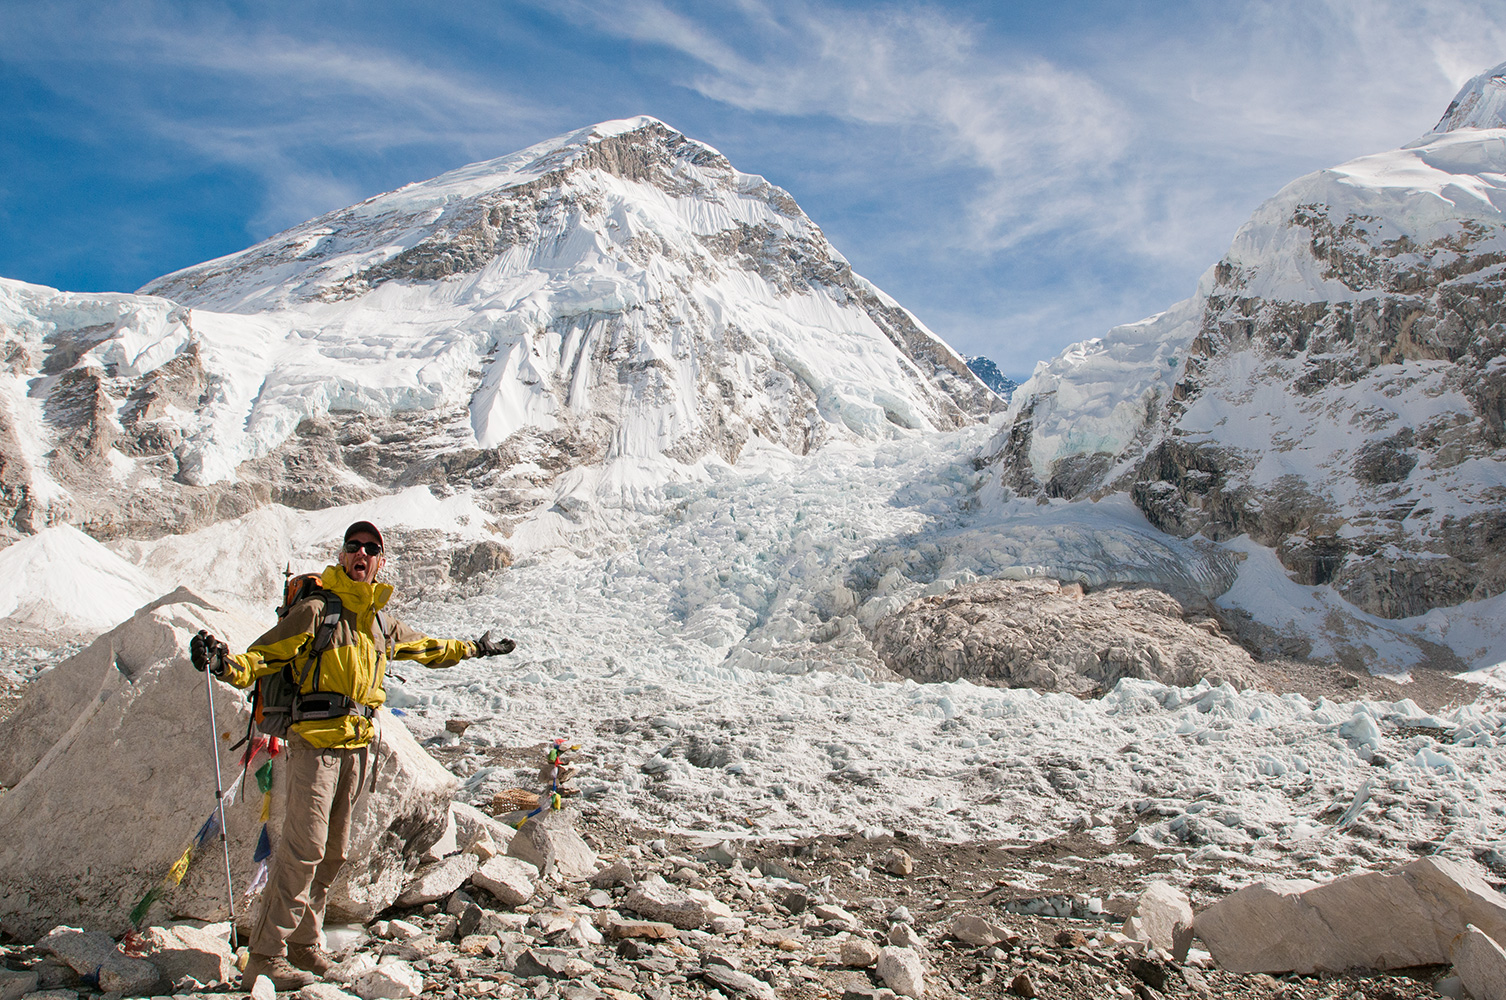 An old style selfie using tripod and self-timer! At the end of November the base camp is desertedNikon D300, 17-35mm